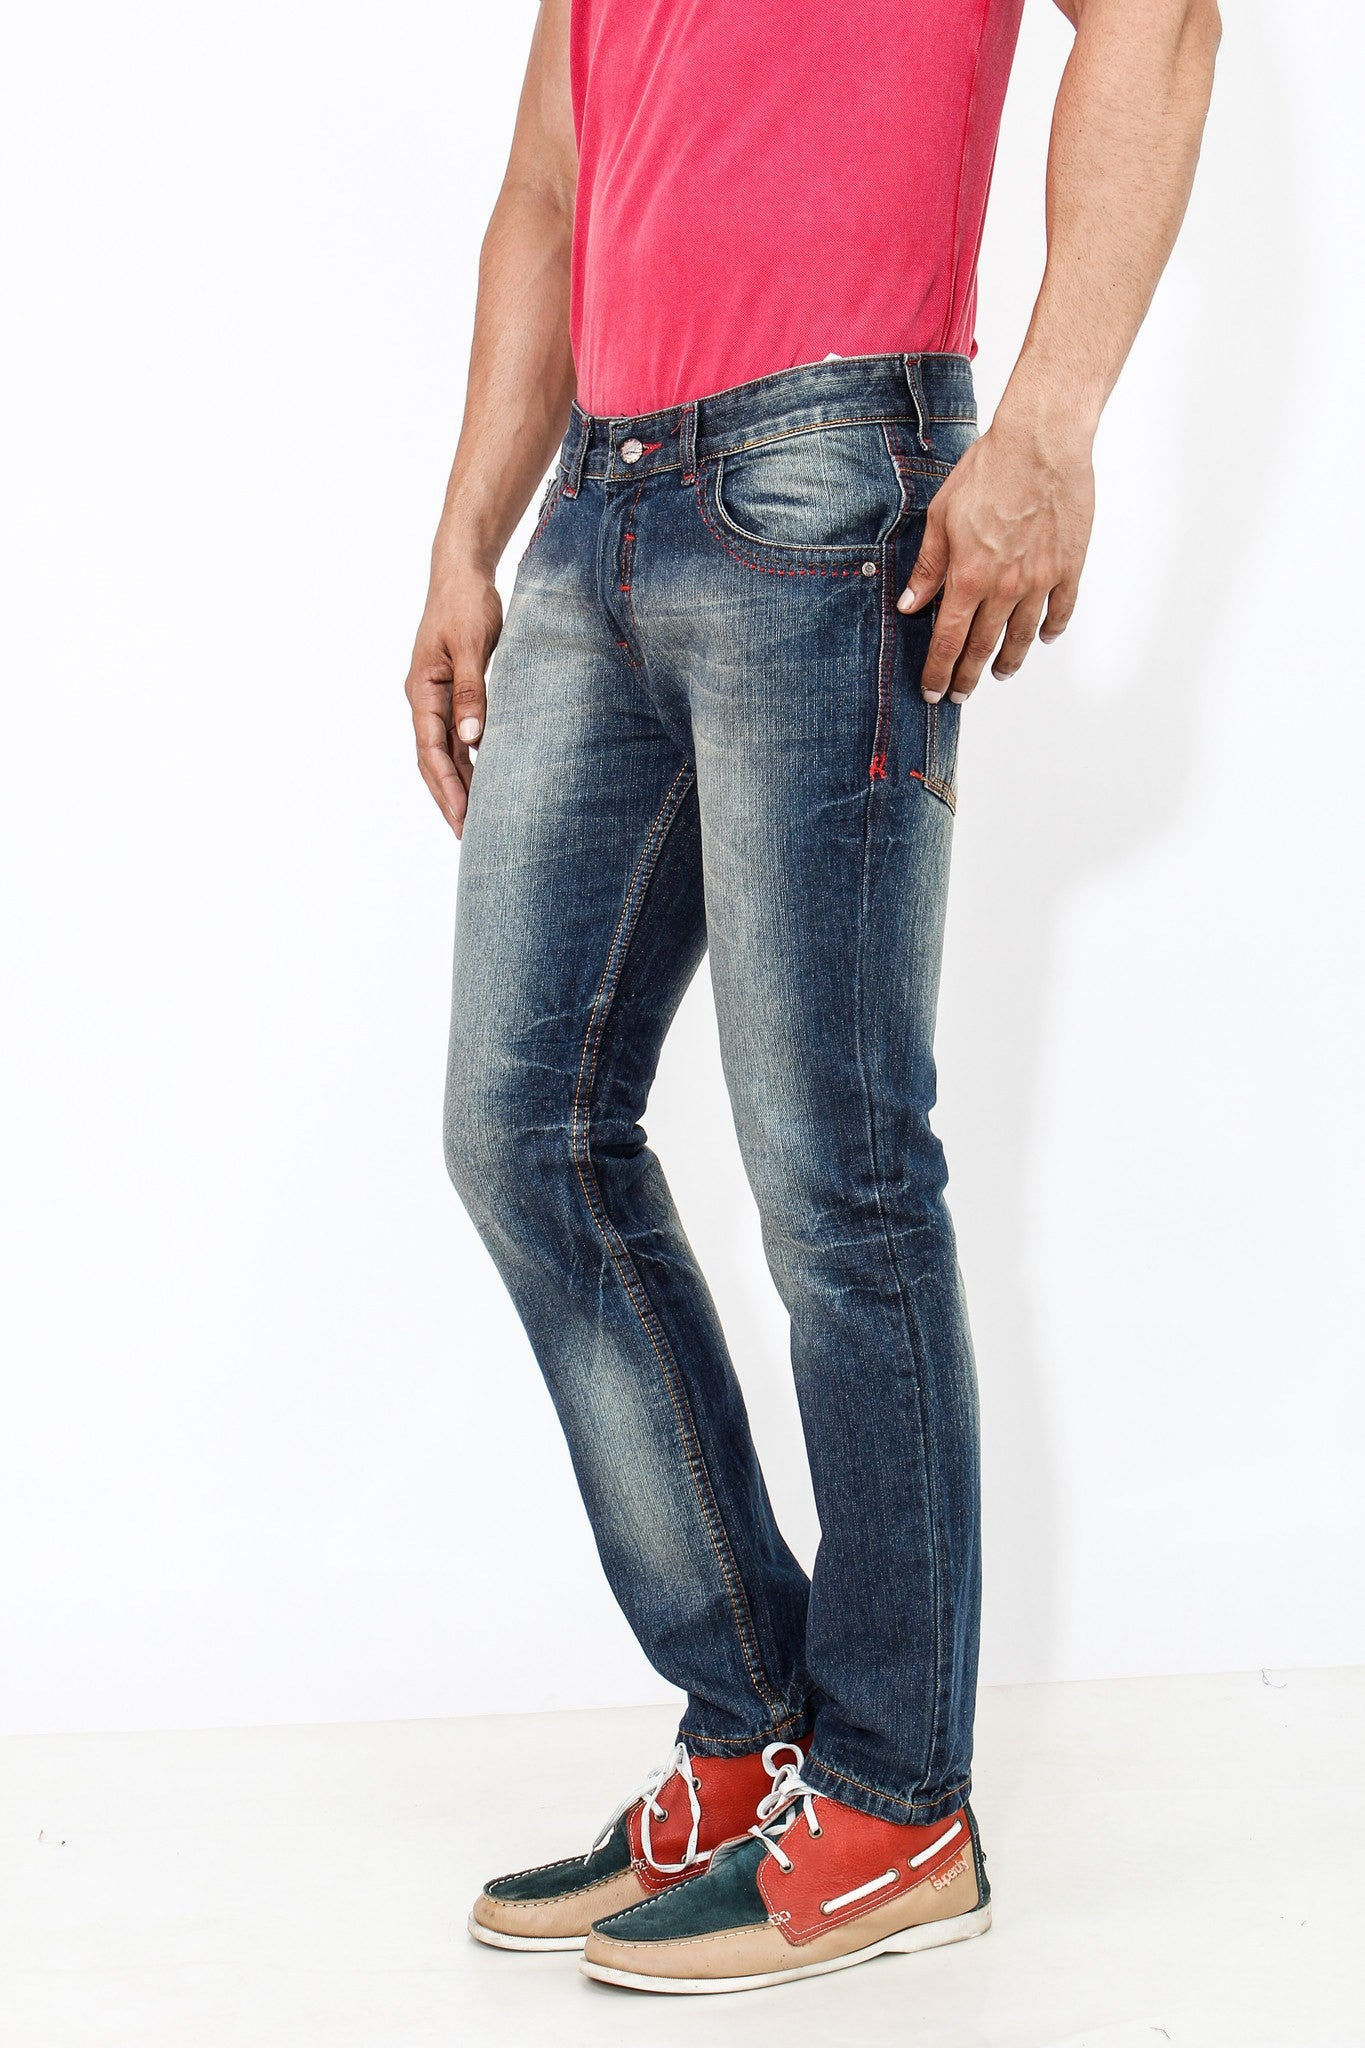 Dimgray Shade Cotton Elastene Red Thread Denim left side view